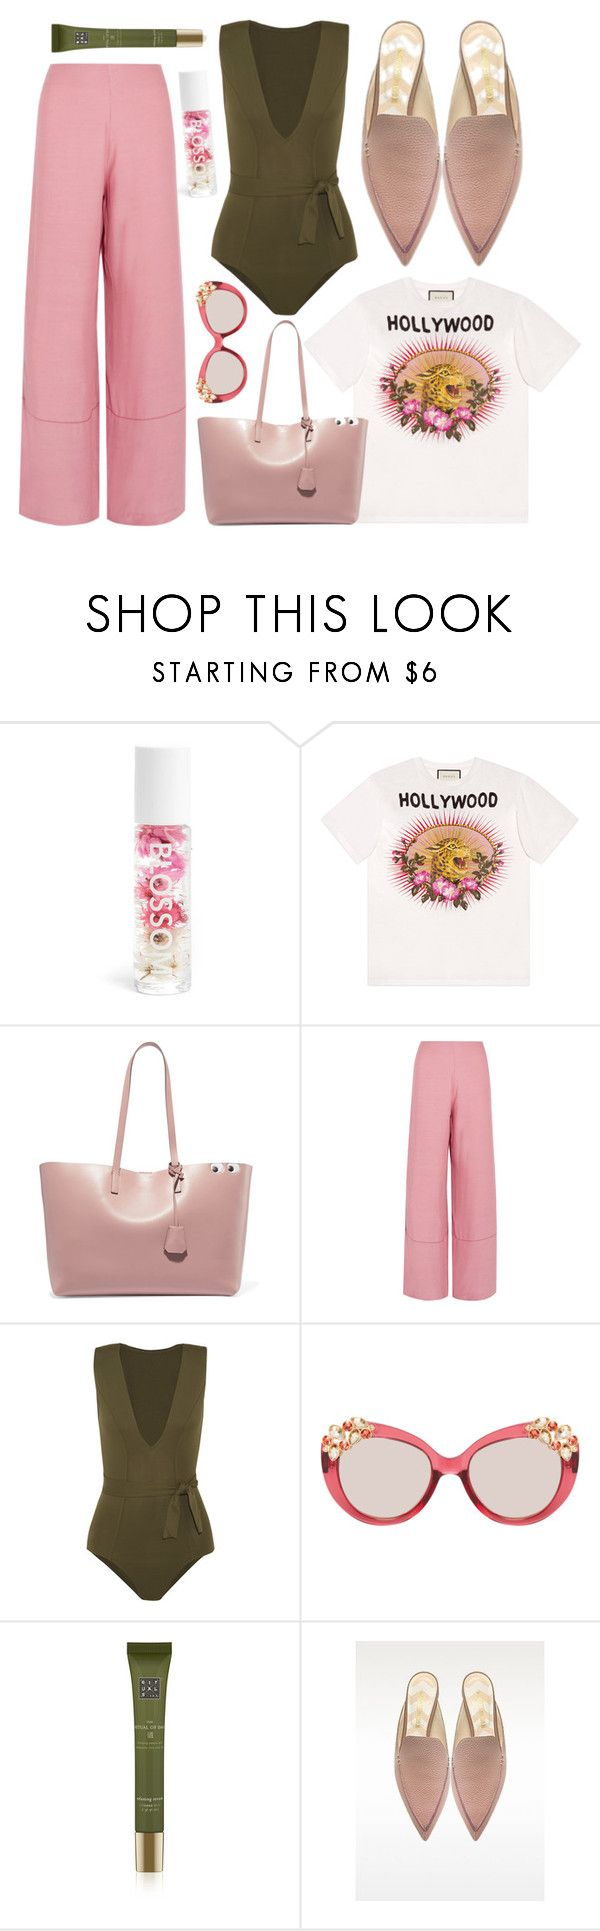 """""""Pink + Olive"""" by cherieaustin ❤ liked on Polyvore featuring Blossom, Gucci, Anya Hindmarch, Staud, Eres, Jimmy Choo, Rituals and Nicholas Kirkwood"""